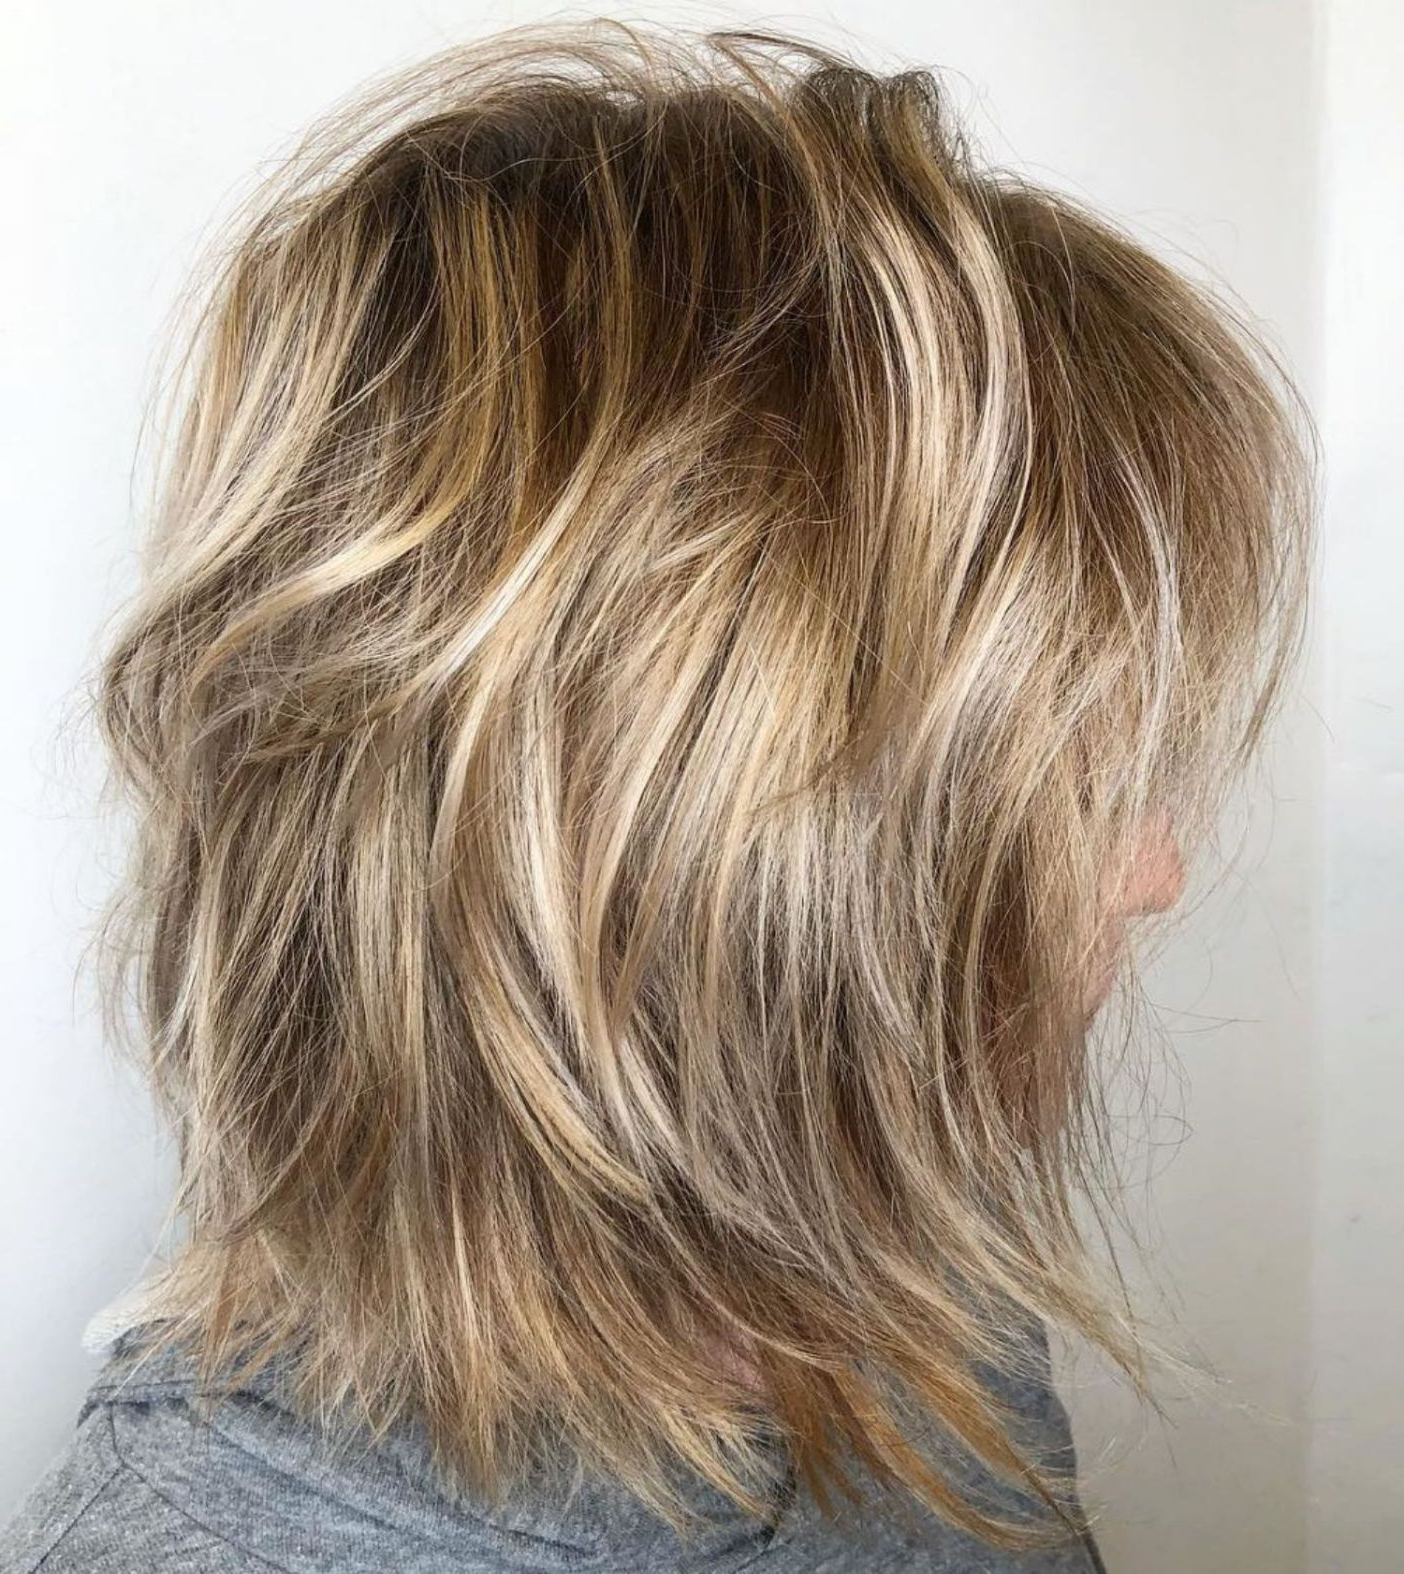 Hairstyles : Shaggy Blonde Bob With Highlights Superb 70 Brightest Regarding Well Known Long Brown Shag Hairstyles With Blonde Highlights (View 10 of 20)